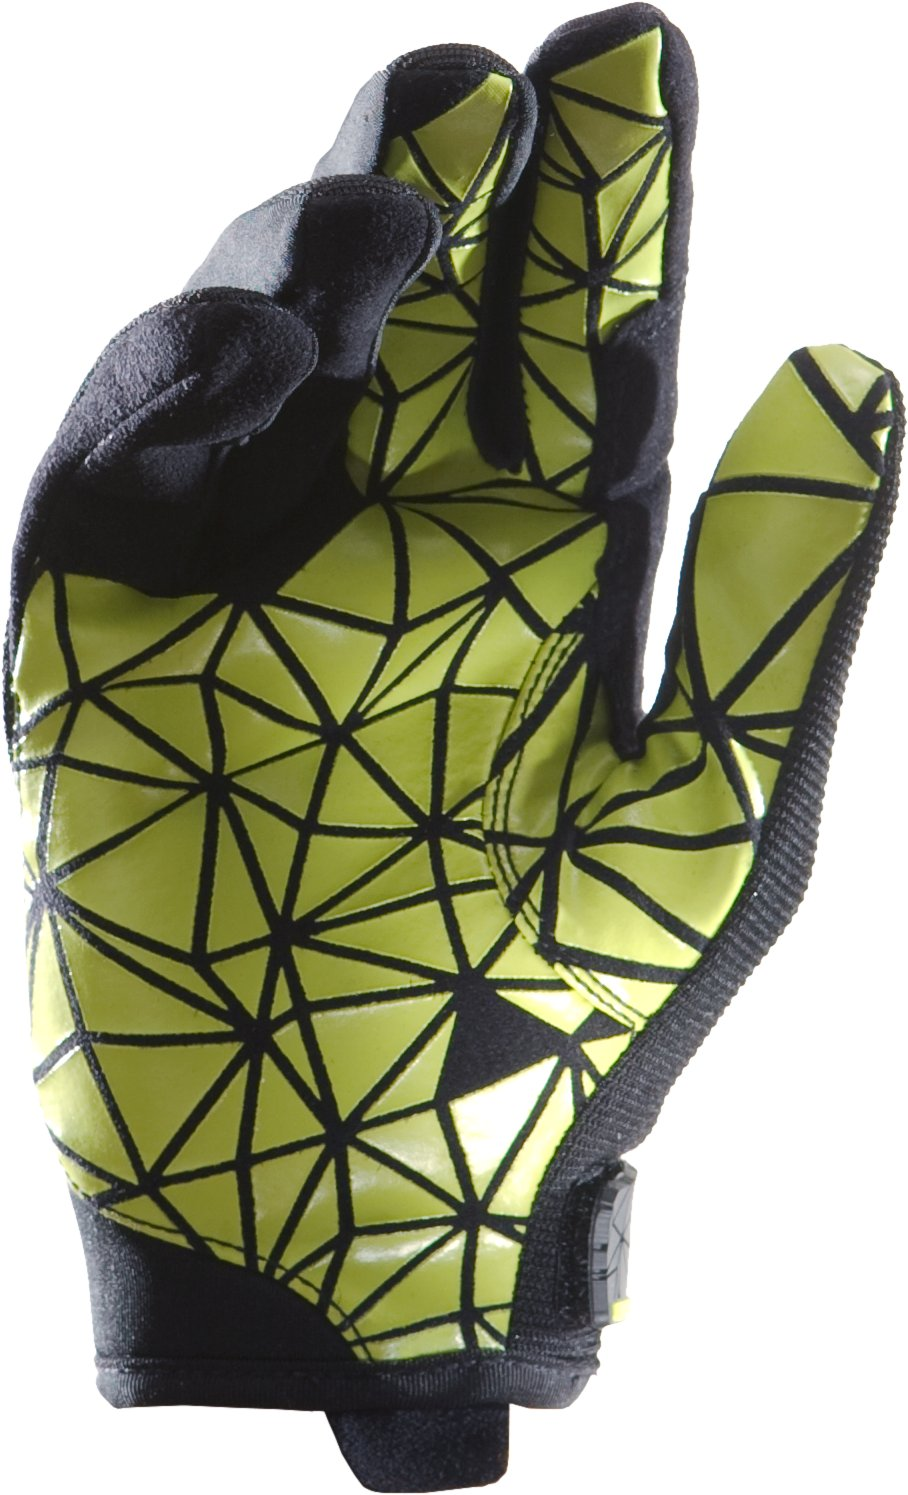 Men's Pipe Gloves, Black